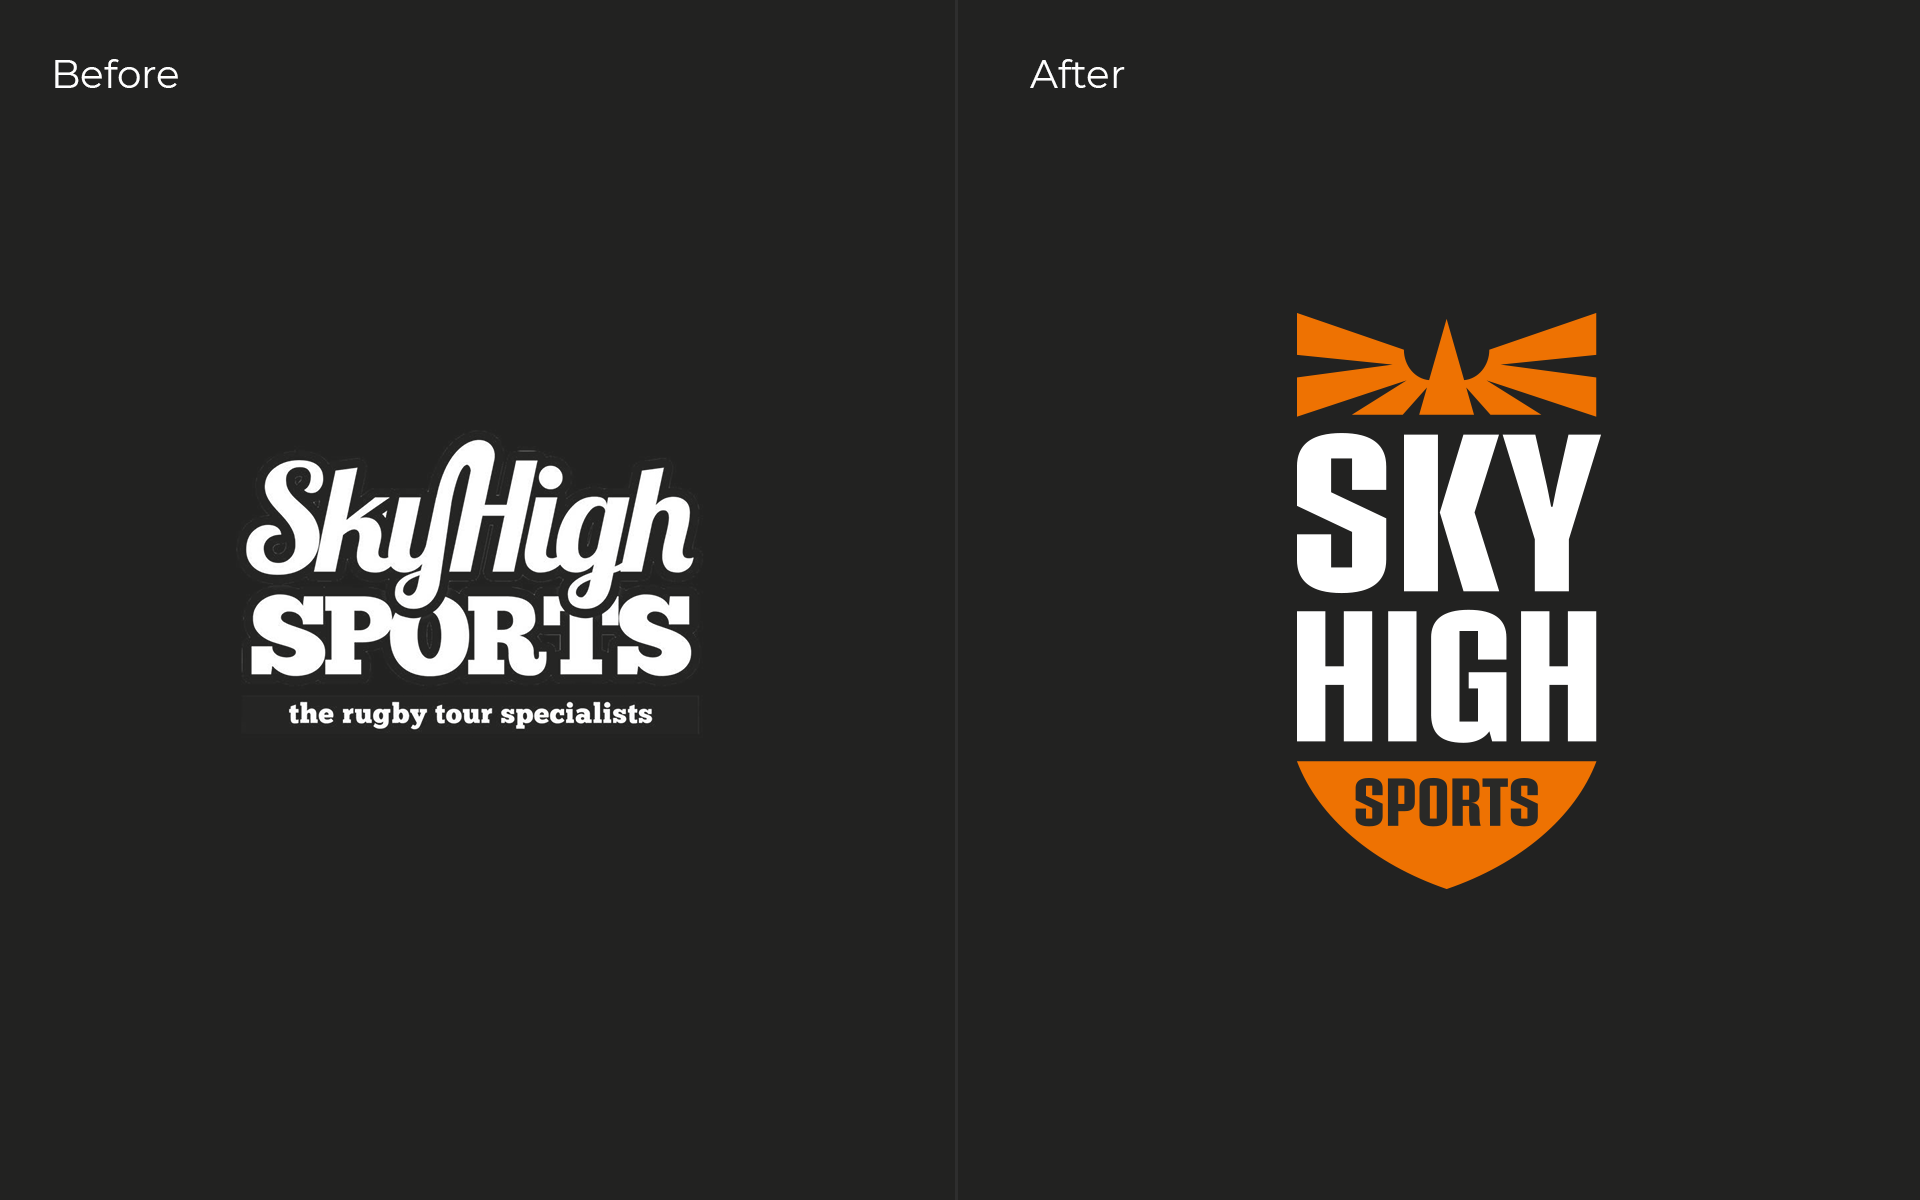 Sky High Sports Logo Before and After